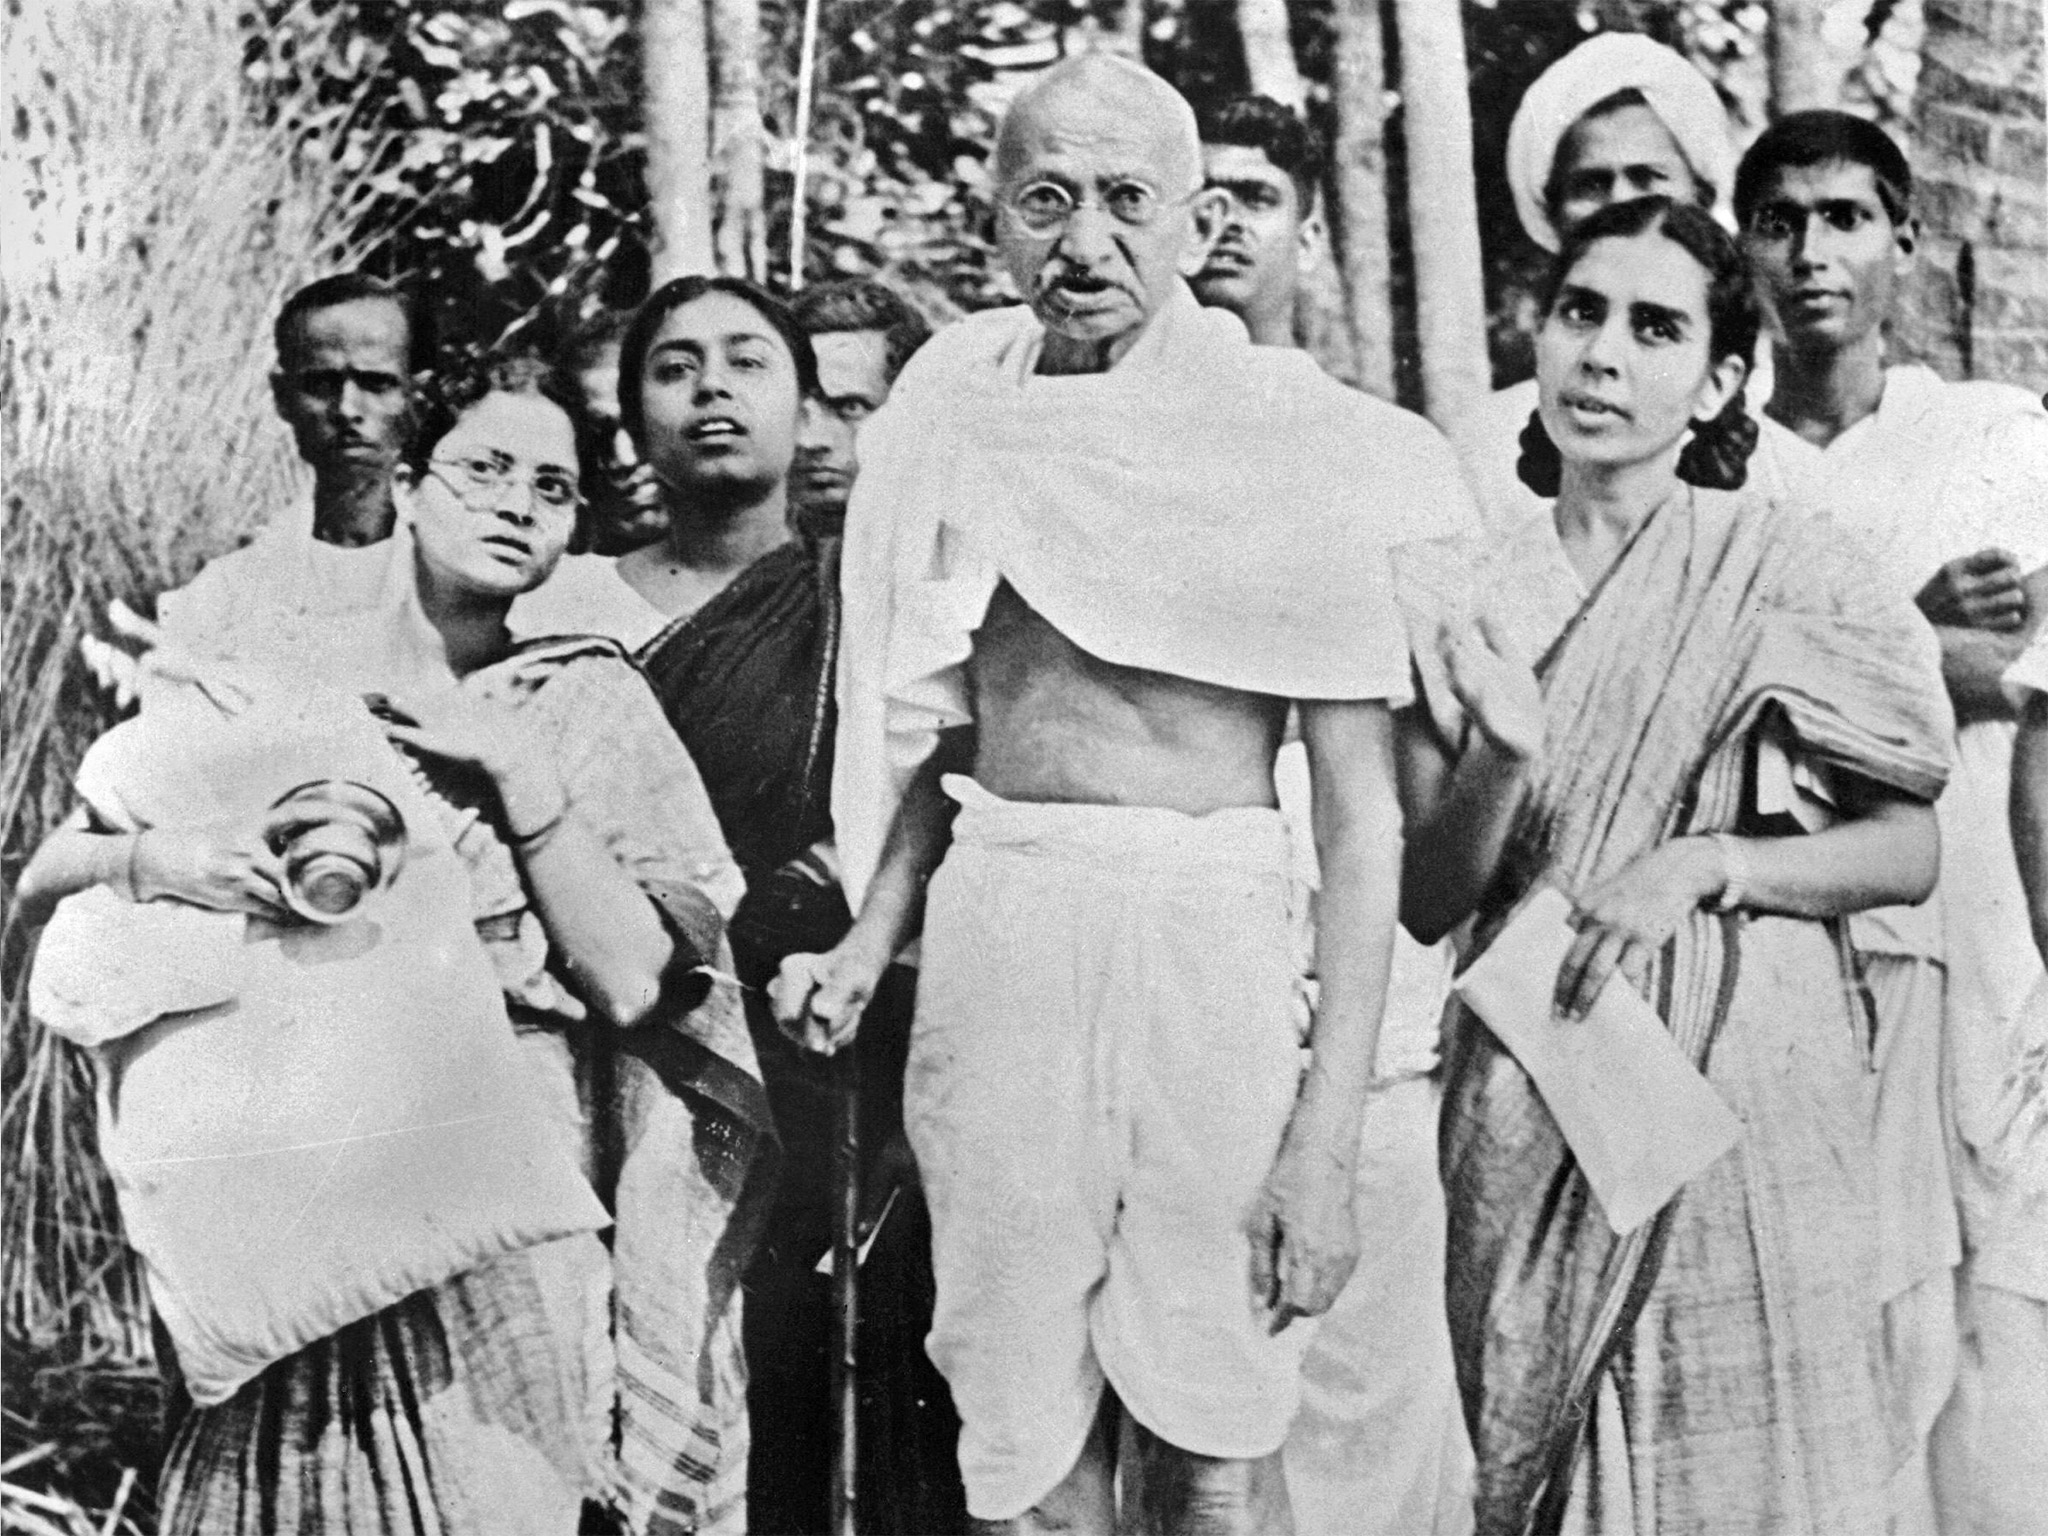 relevance of gandhi What are the factors that makes gandhi relevant in present times we use your linkedin profile and activity data to personalize ads and to show you more relevant ads.